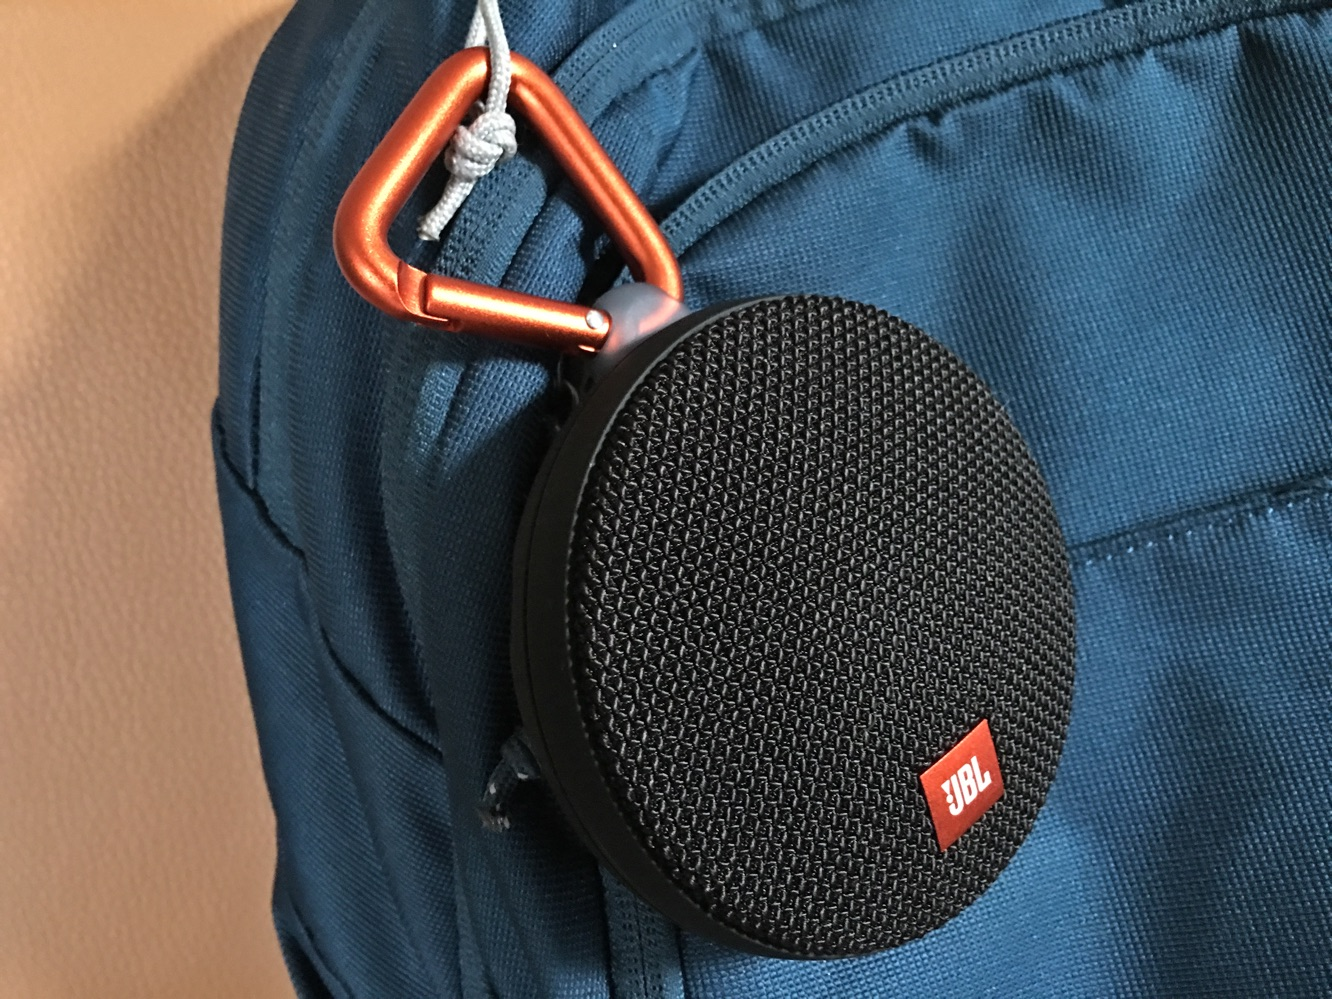 jbl clip 2. jbl is currently selling the year-old clip+ at a reduced $40 price, but we think clip 2 worth considering instead, especially for those users who intend jbl